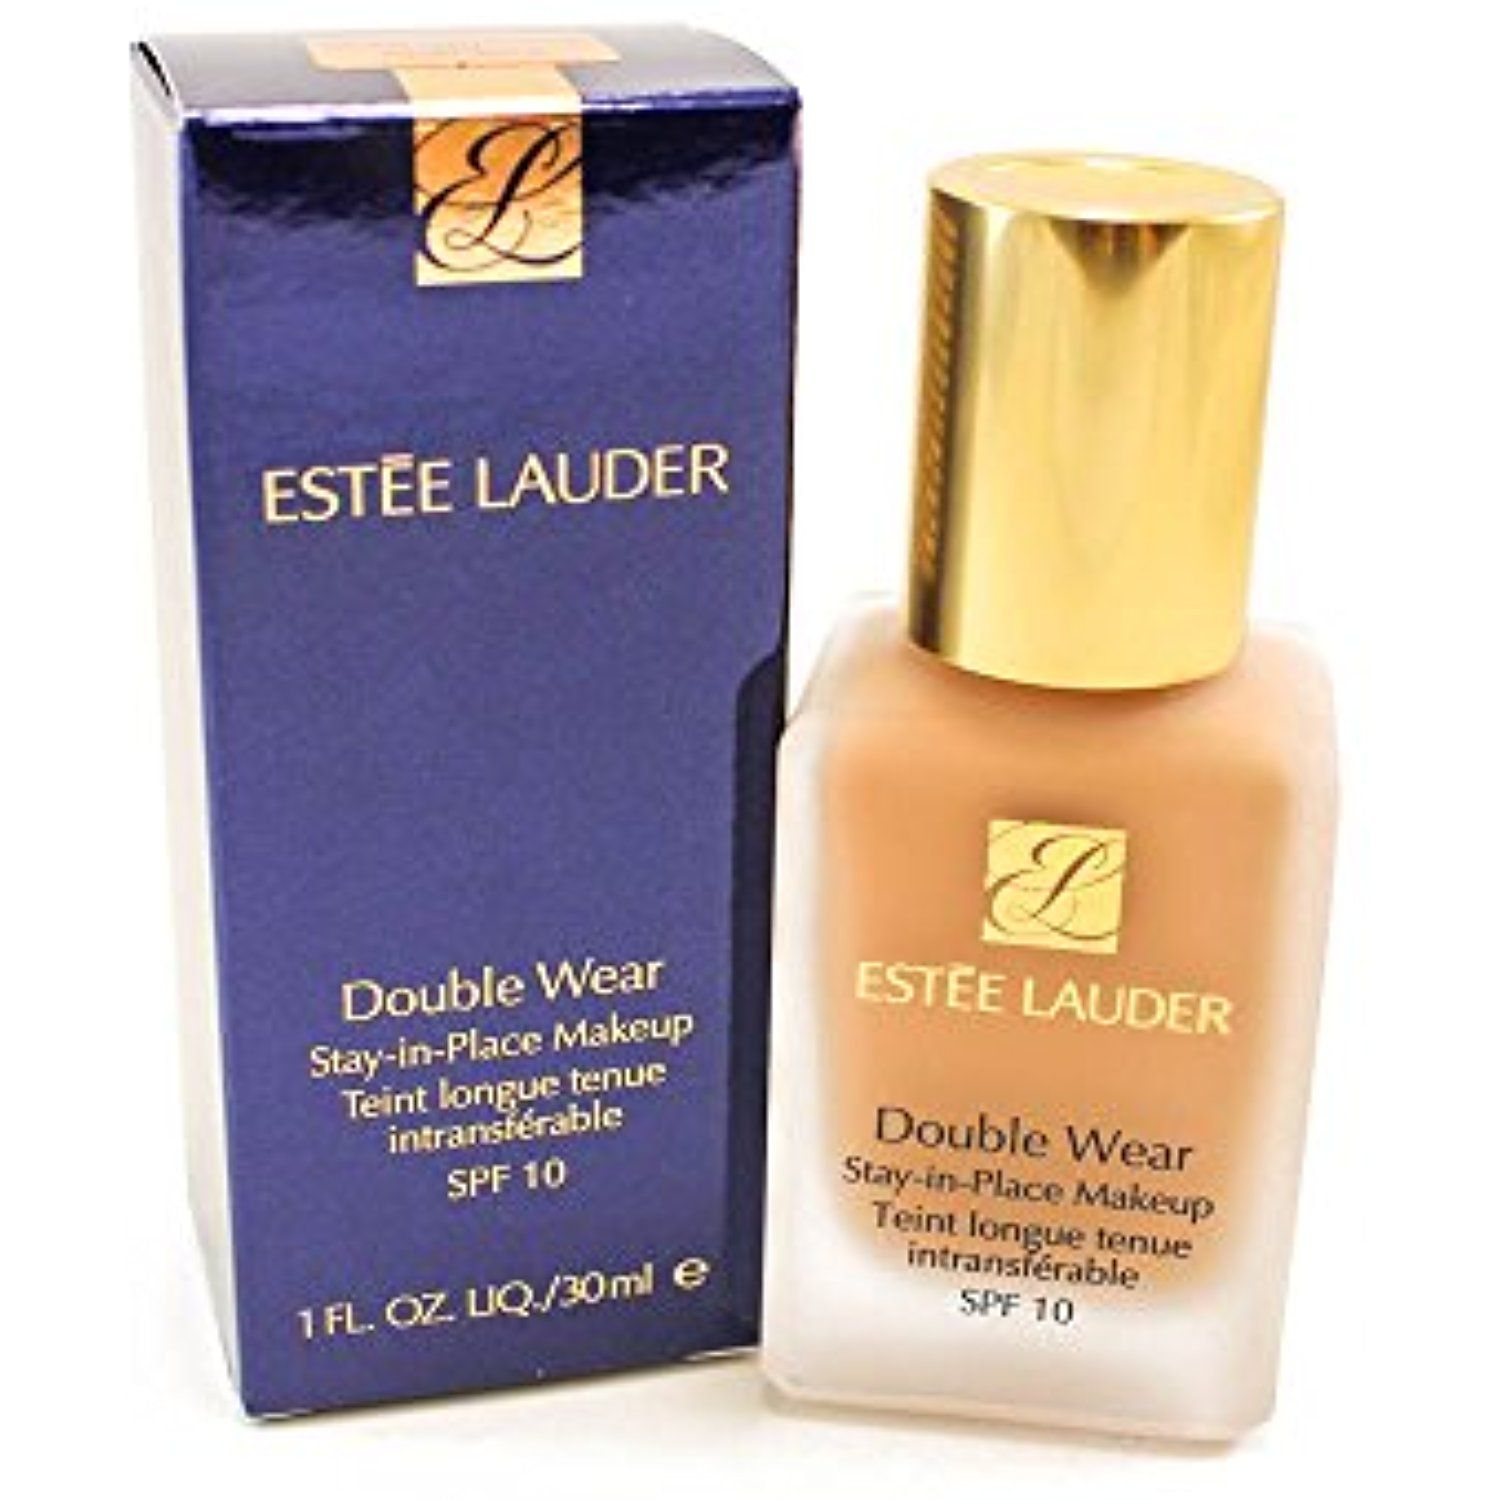 Estee Lauder SPF 10 Double Wear StayIn Place Makeup for